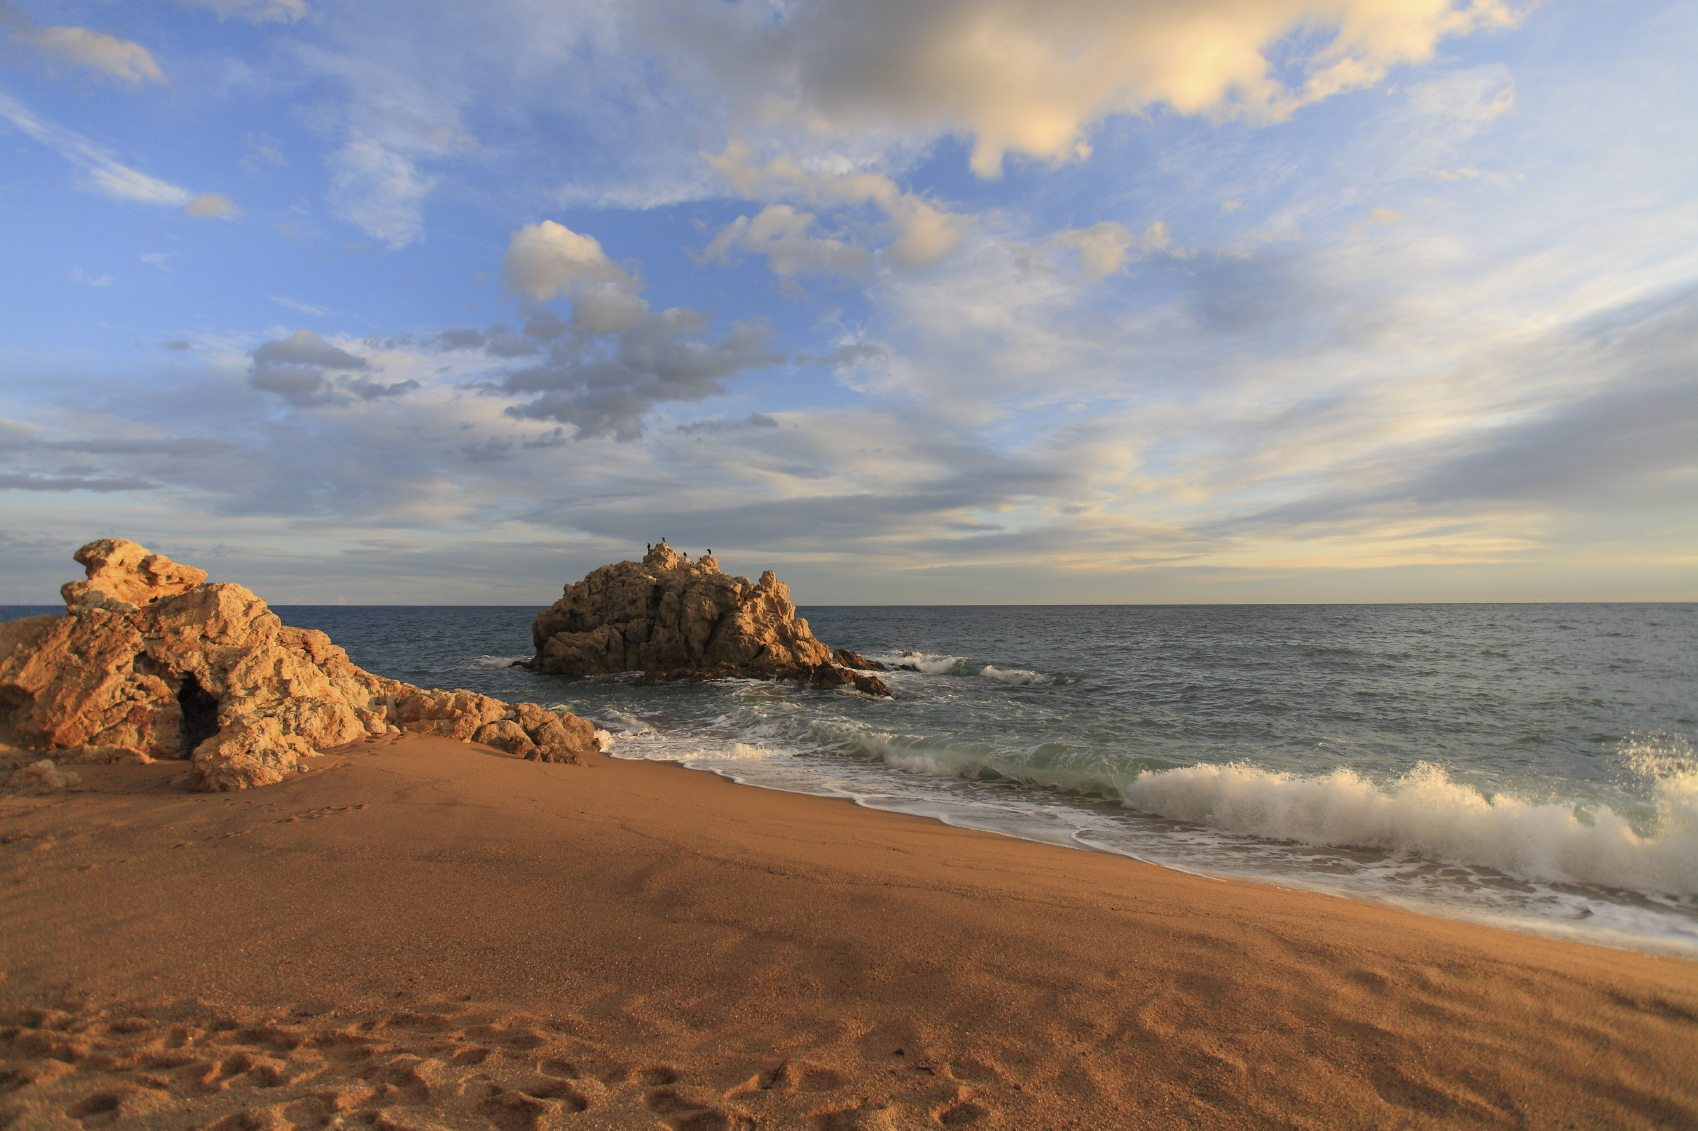 Sant Pol de mar, Roca grossa beach in Maresme, Barcelona, Spain